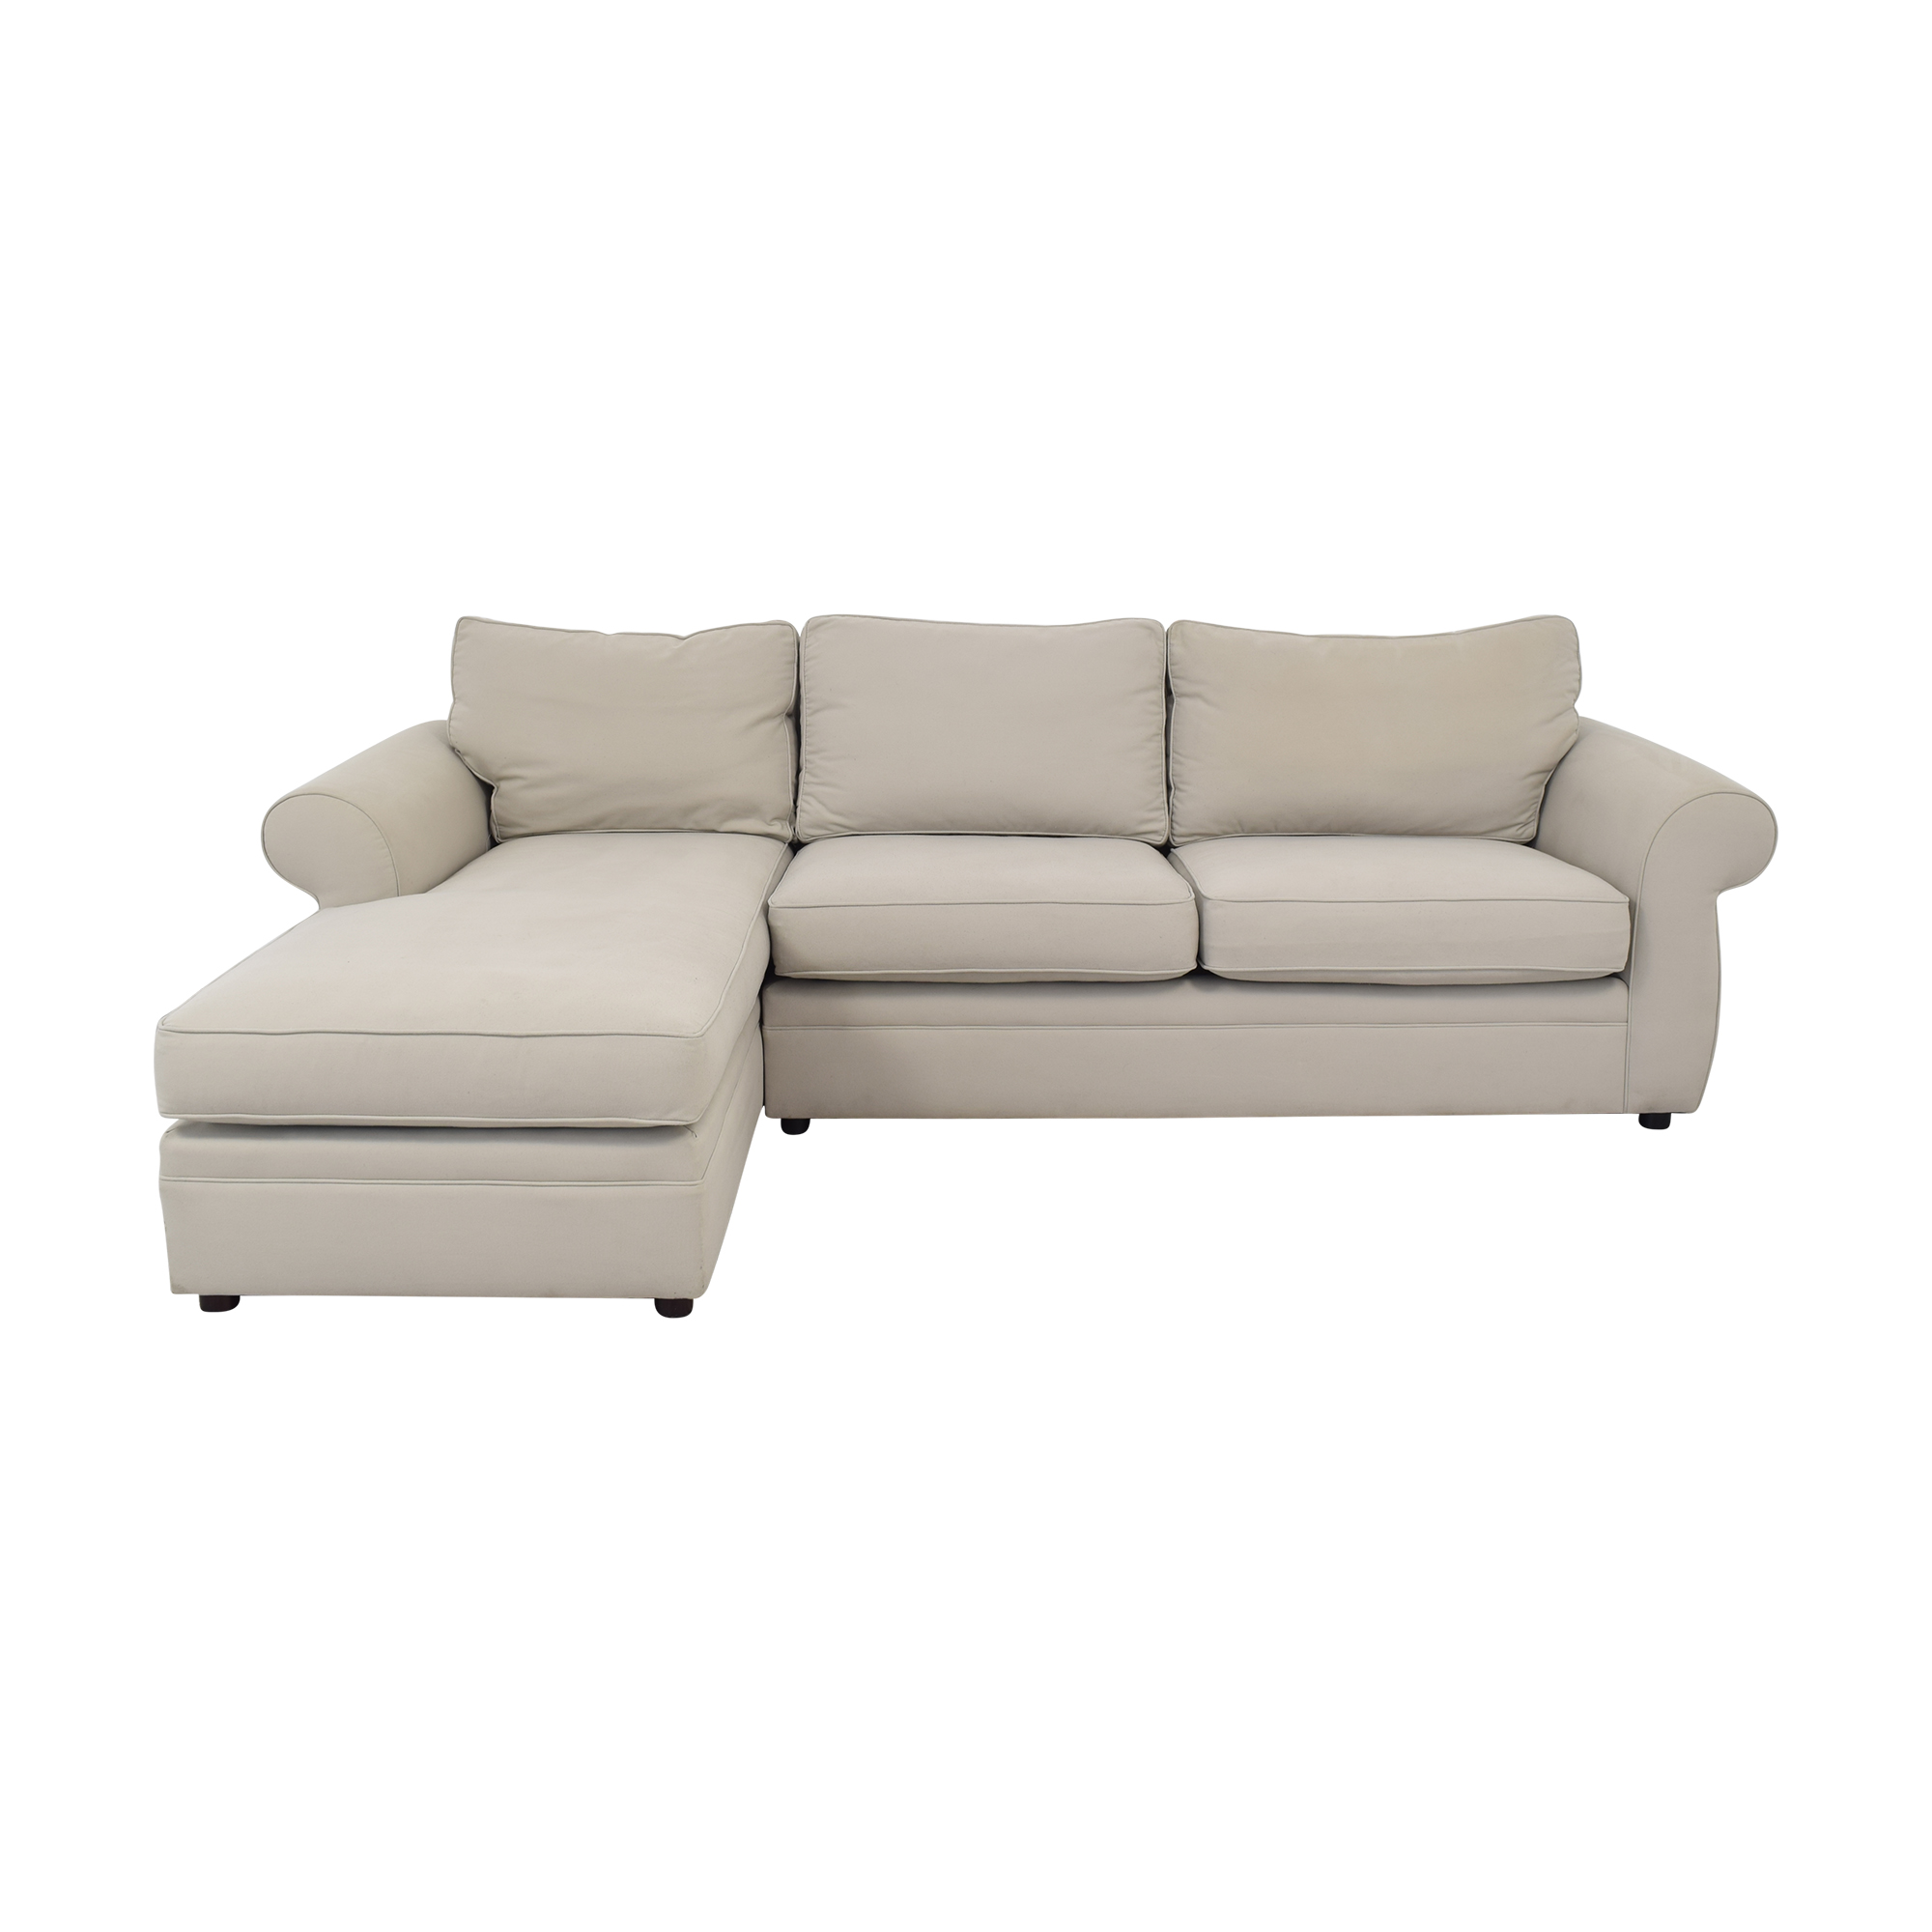 Pottery Barn Pearce Roll Arm Chaise Sectional Sofa Pottery Barn